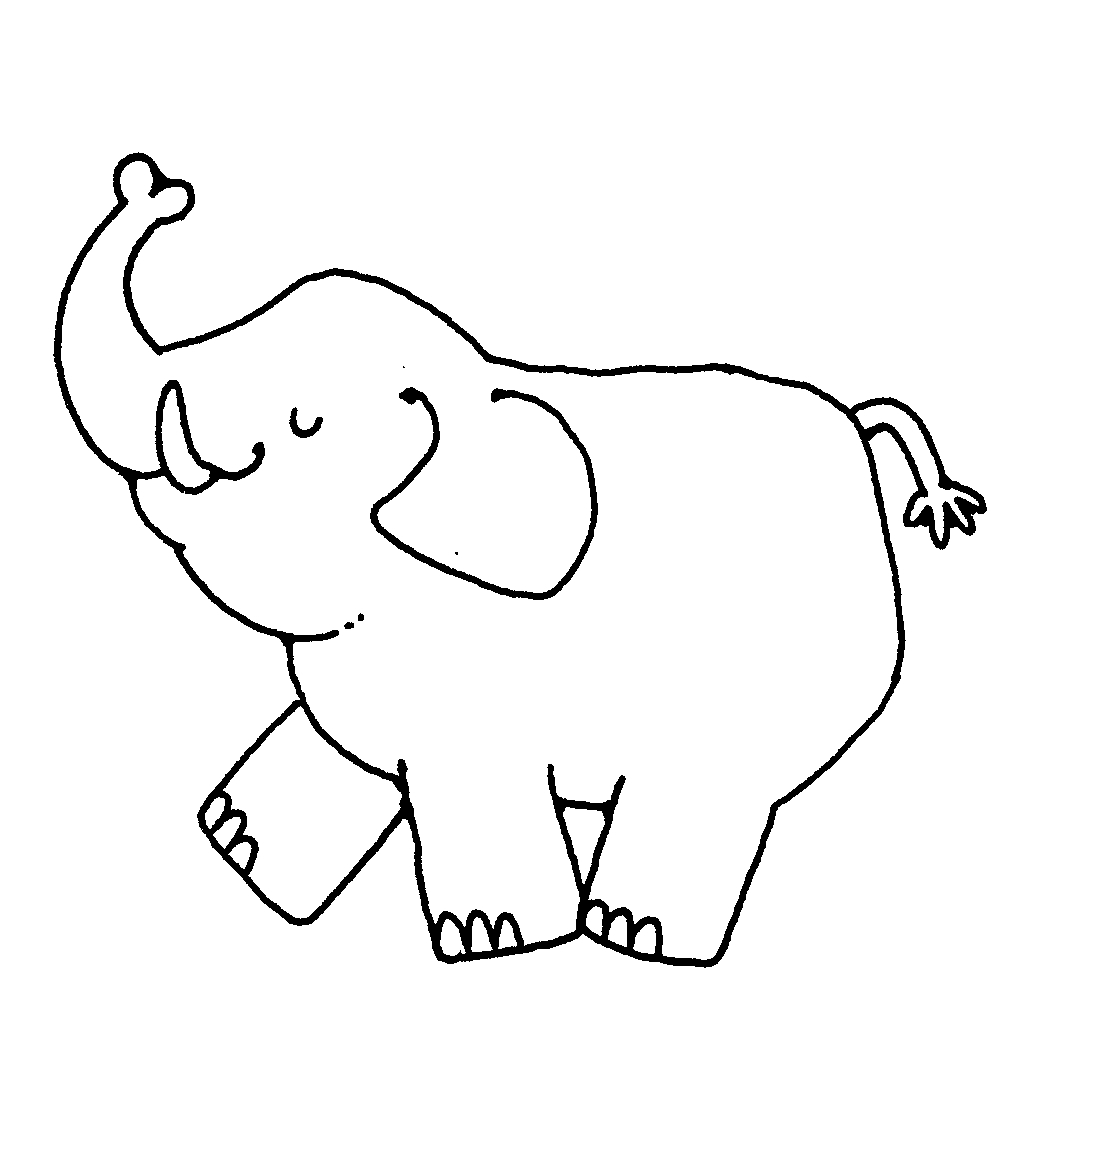 Elephant black and white clipart png freeuse download Free Elephant Images Black And White, Download Free Clip Art, Free ... png freeuse download